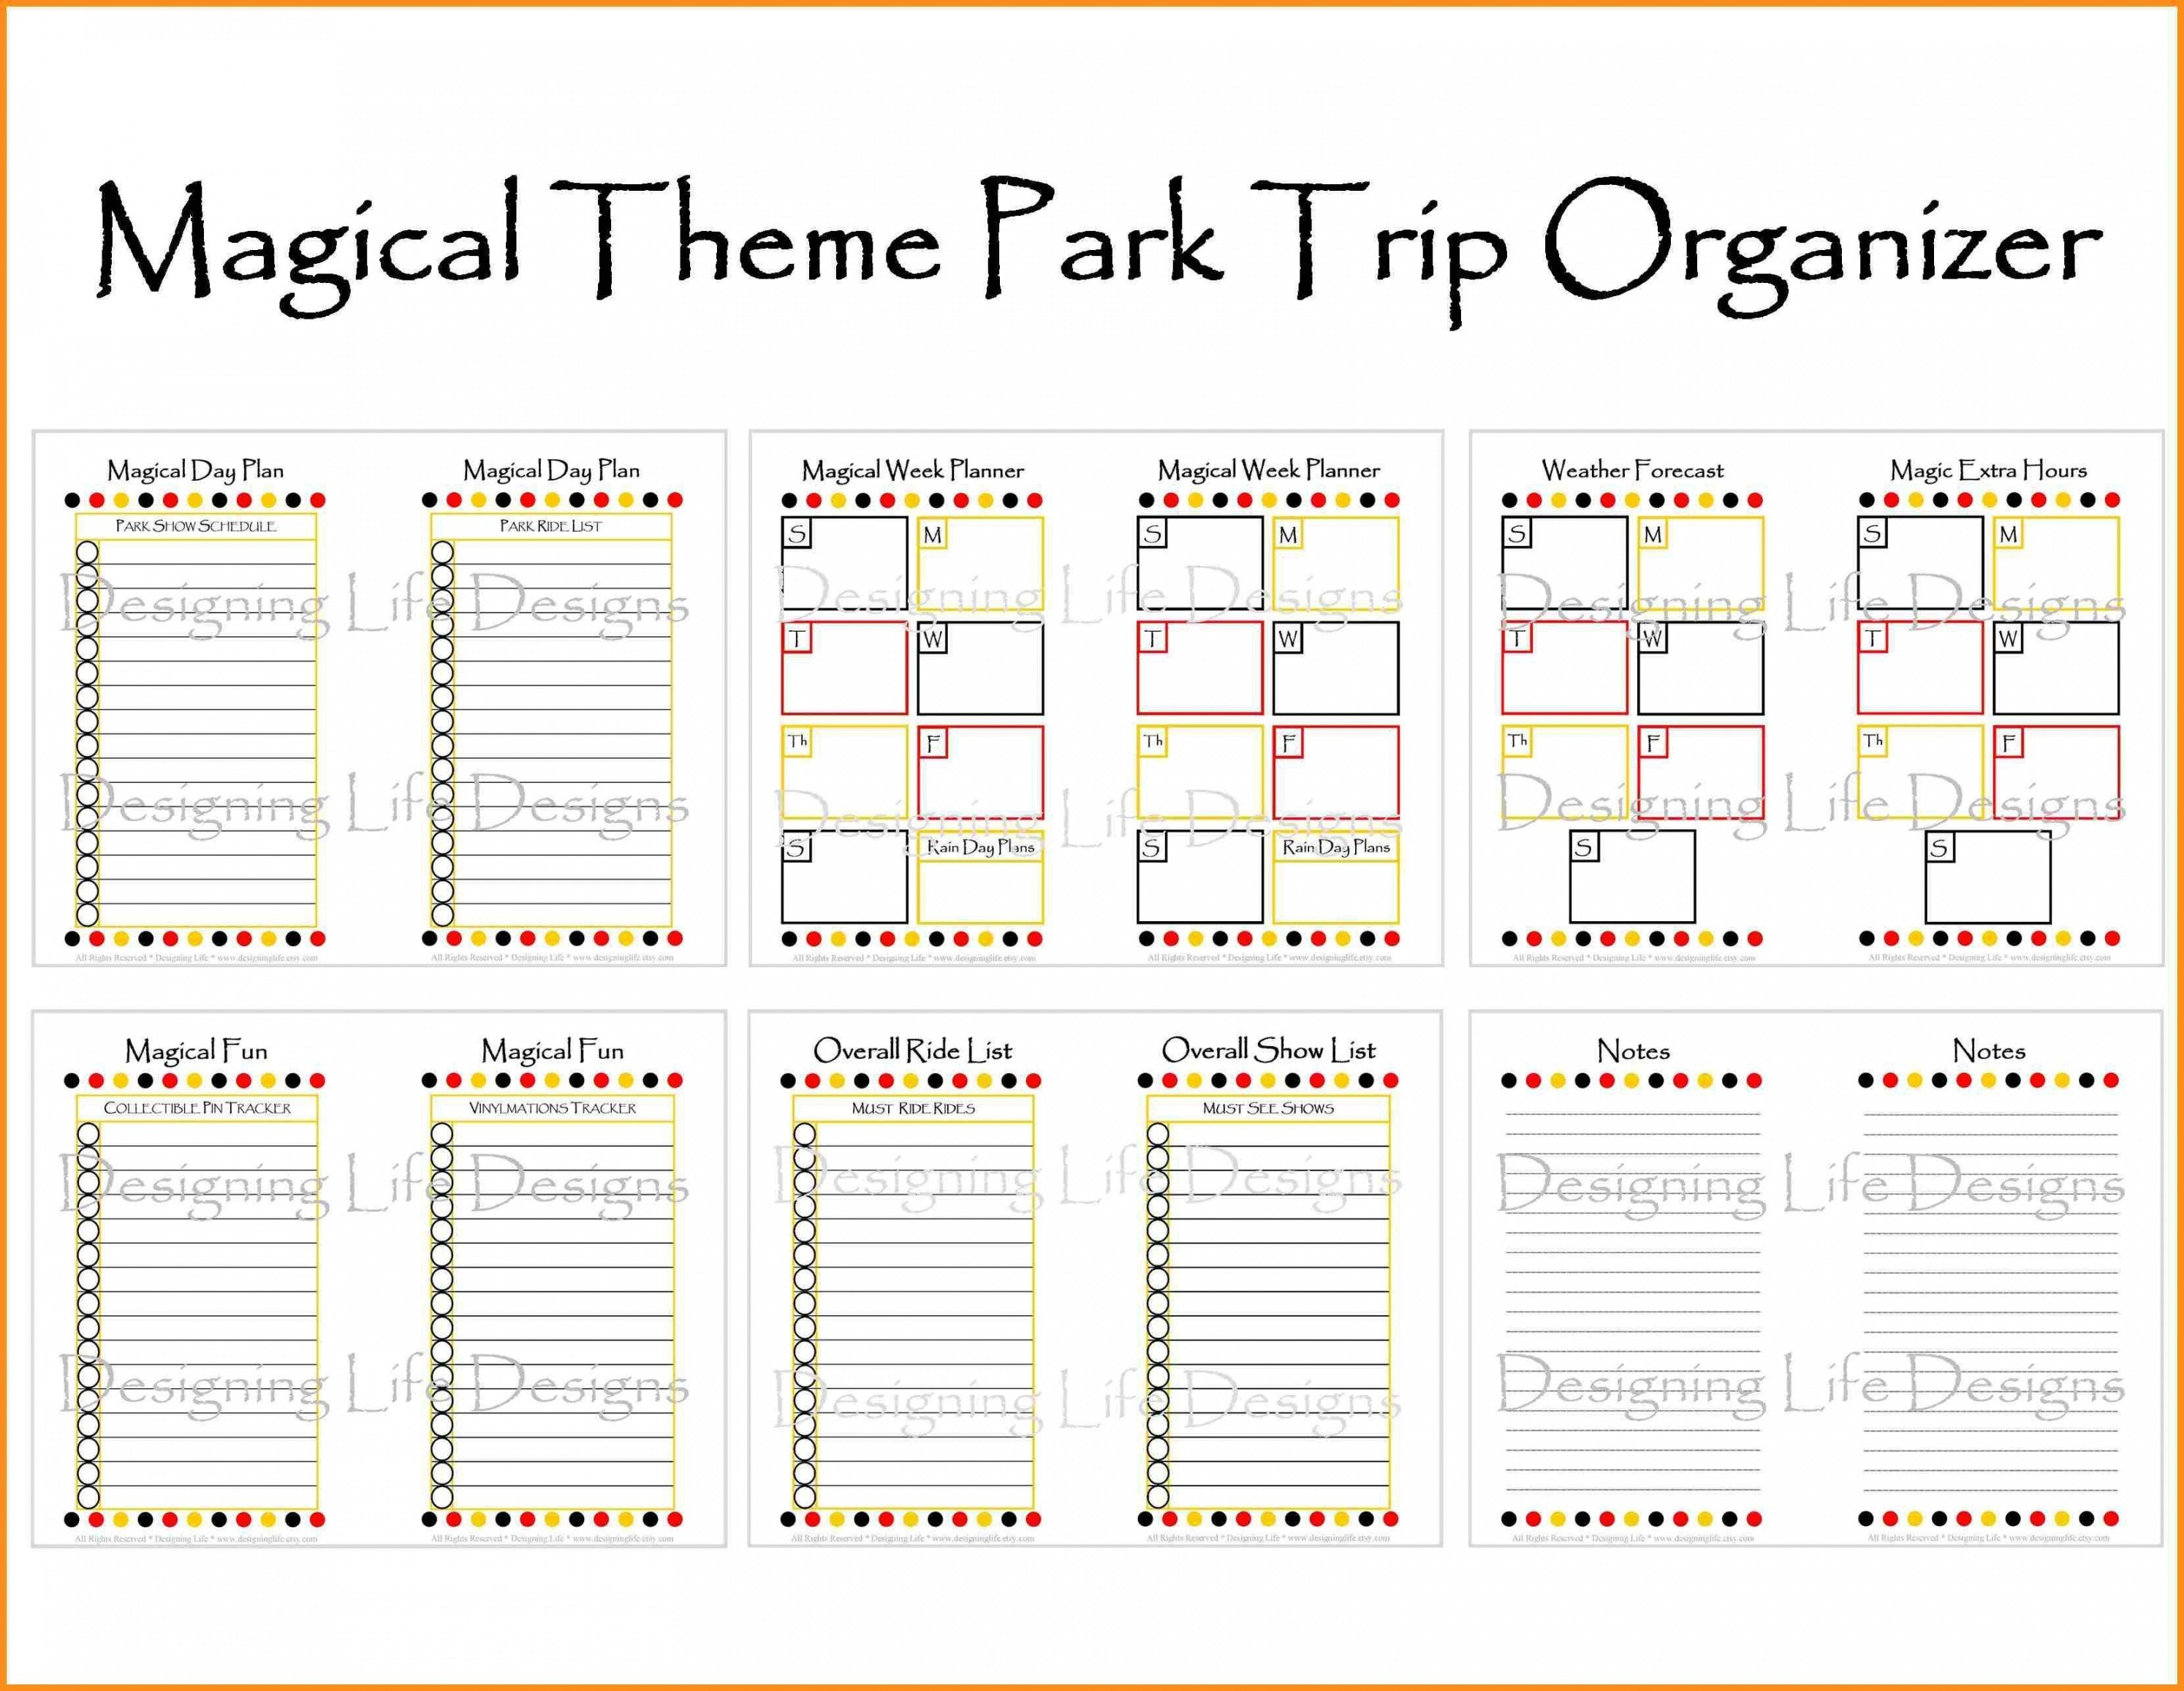 Image Result For Disney World Itinerary Template Disney Fun-Custom Disney World Itenerary Template